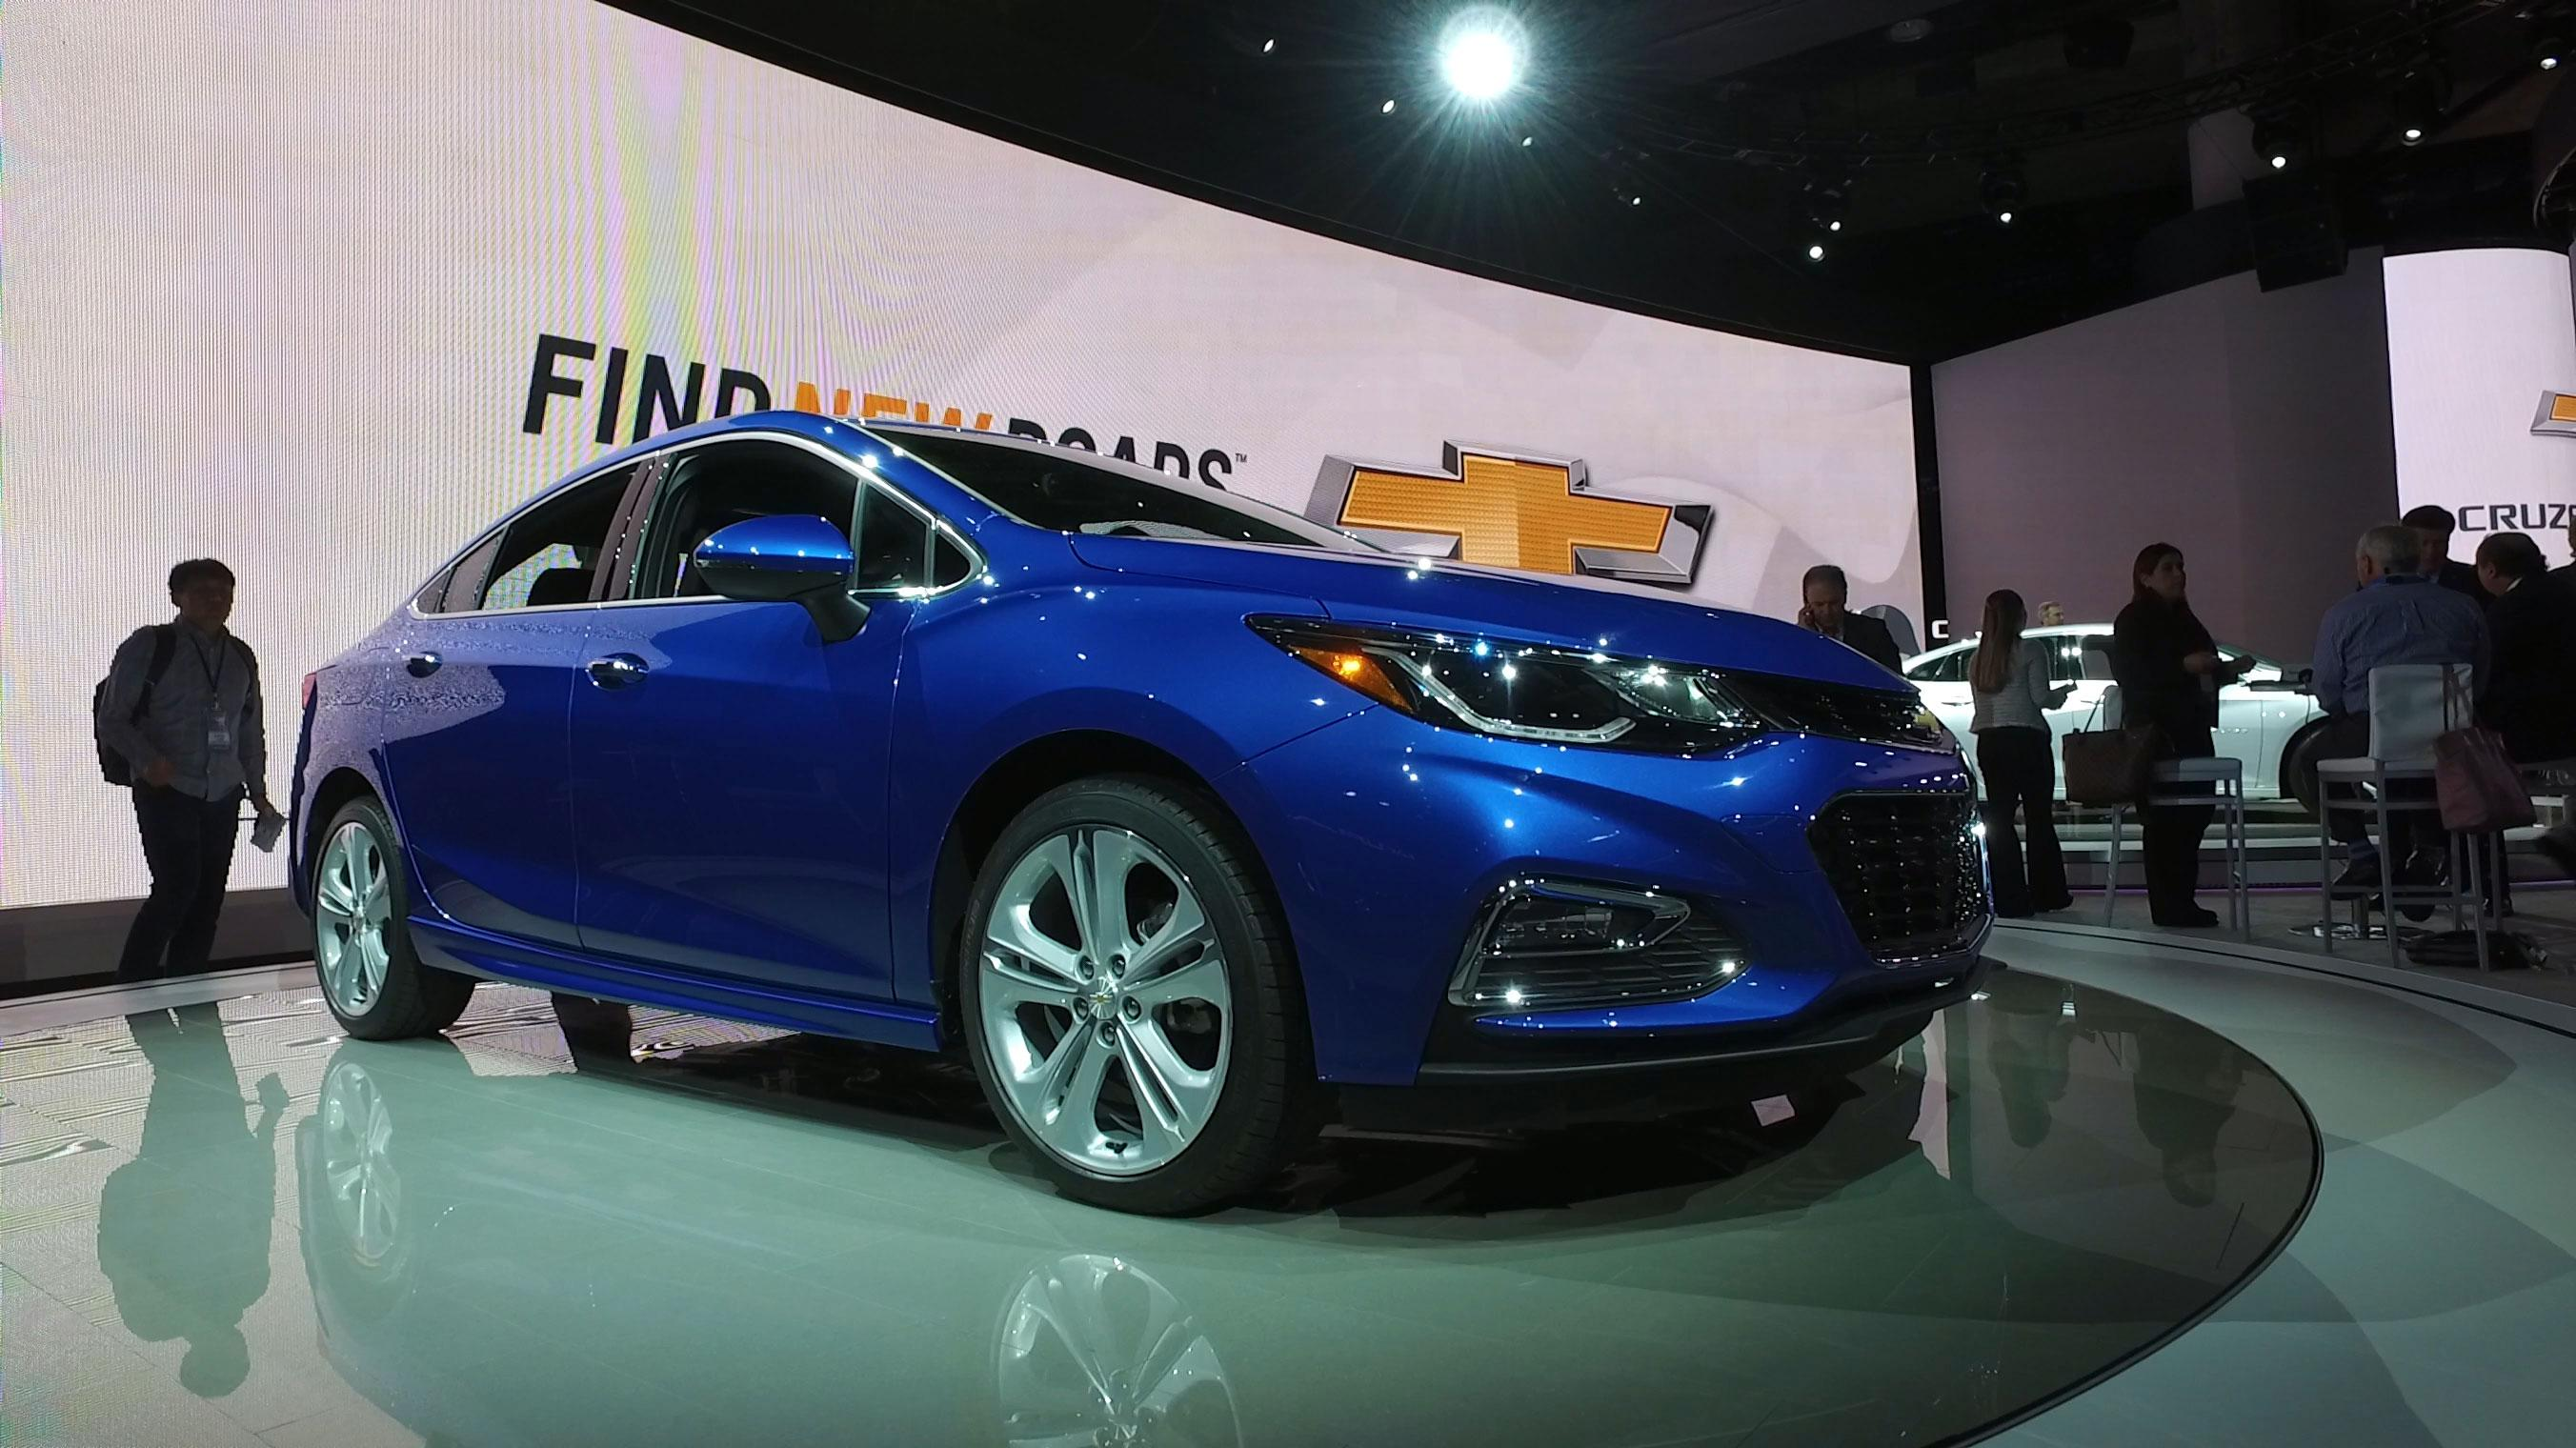 2016 chevy cruze aims to feel bigger with redesign [ 2704 x 1520 Pixel ]